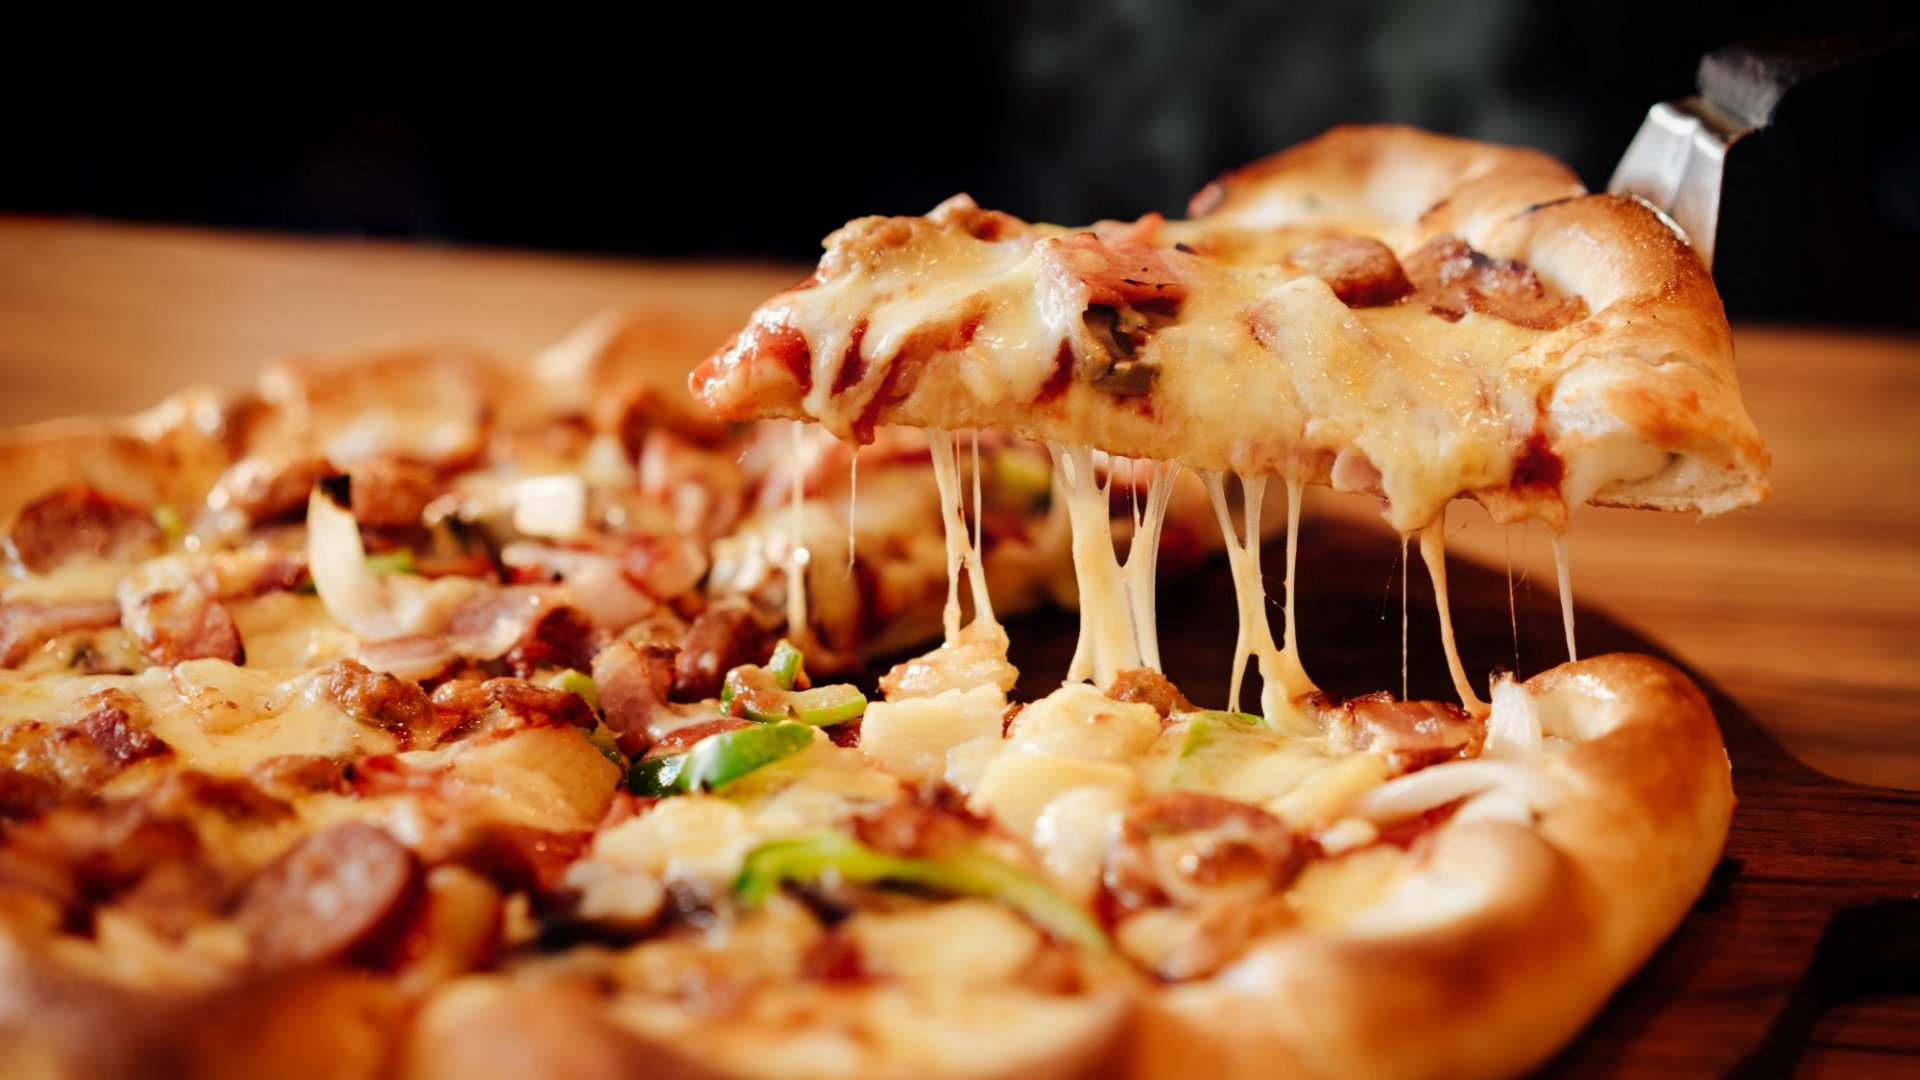 Was It So Unreasonable To Double The Price Of Pizza On New Year's Eve?